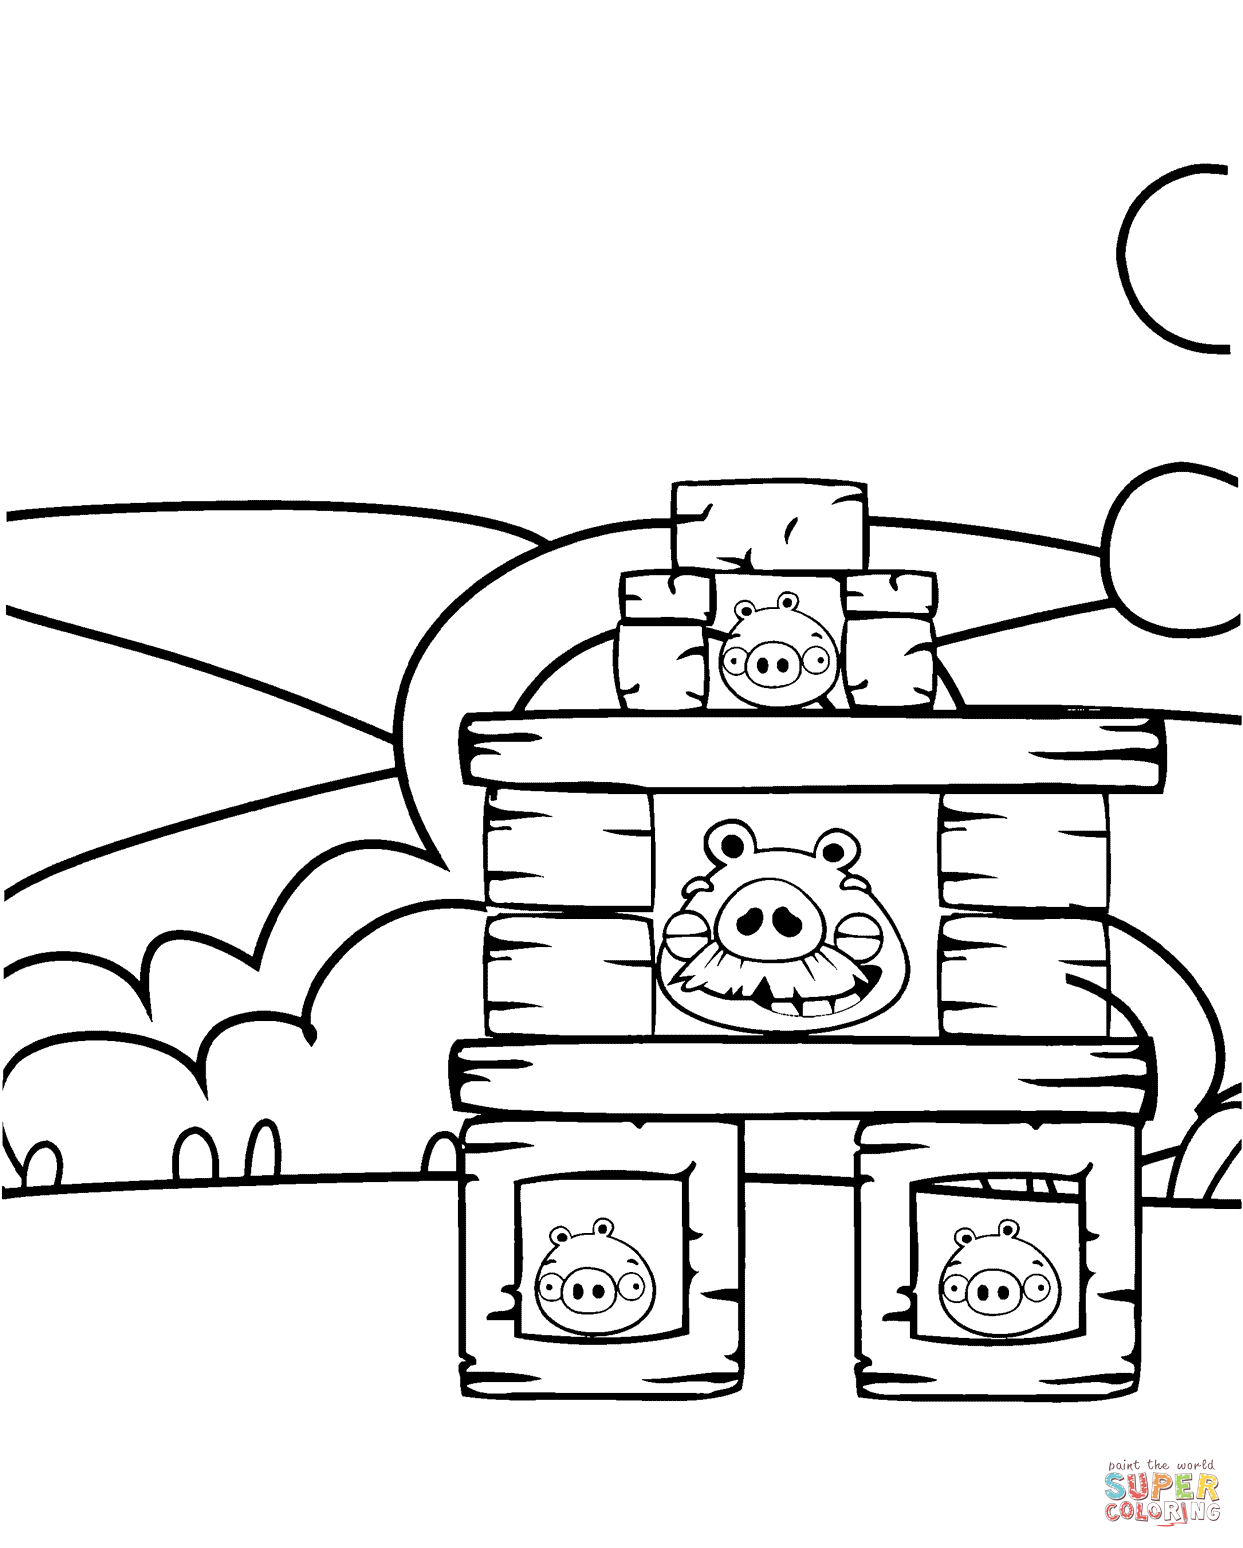 Pig S Fortifications Coloring Page